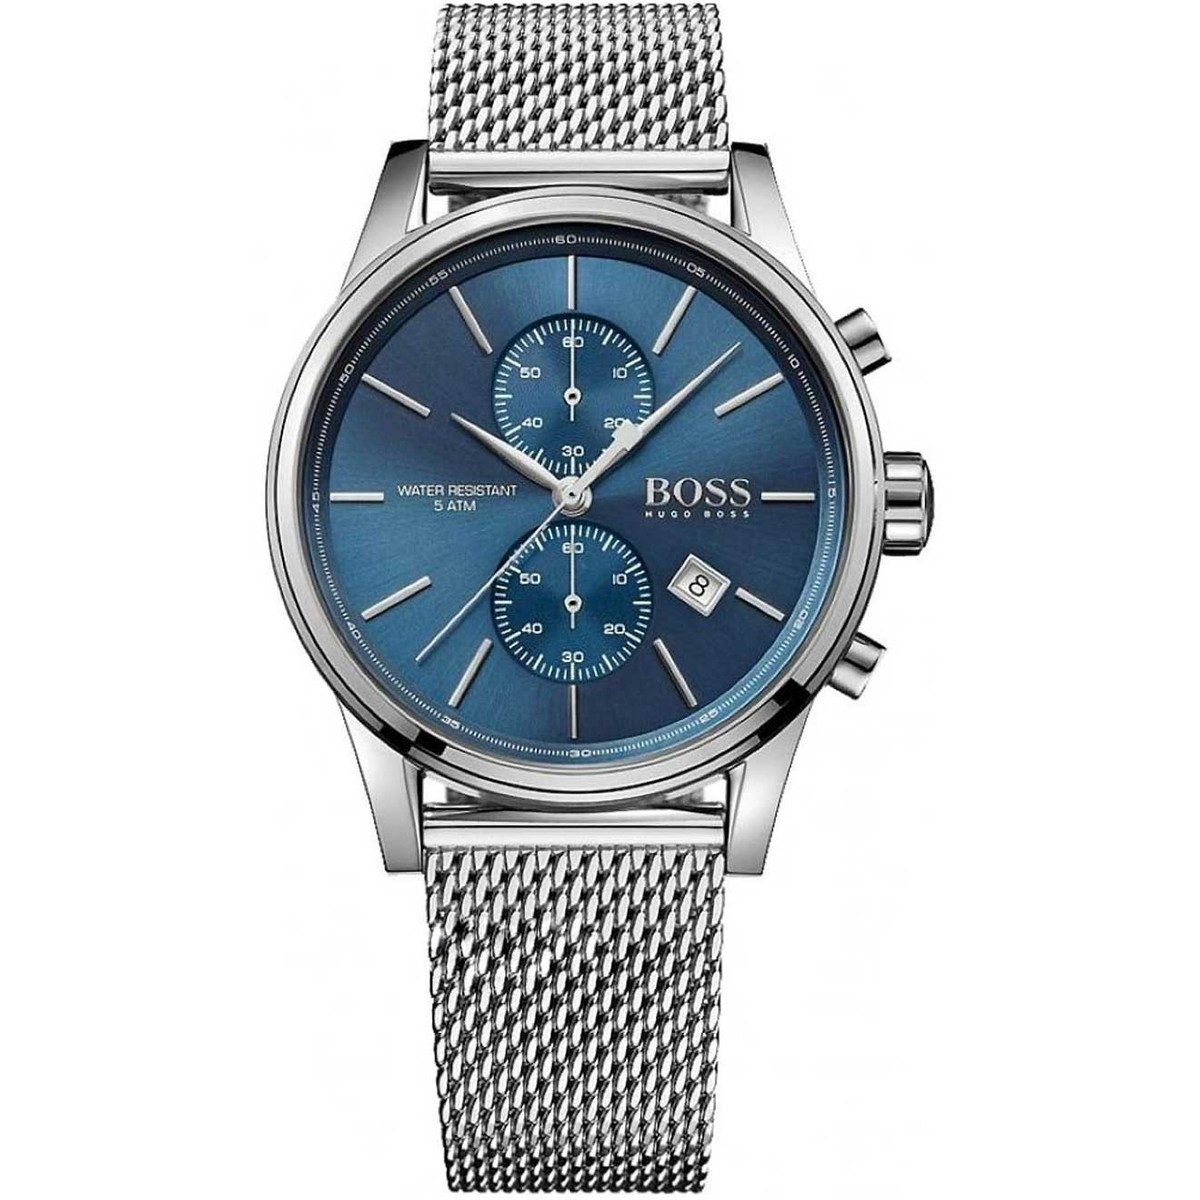 Ceas barbatesc Hugo Boss 1513441 Chronograph de mana original